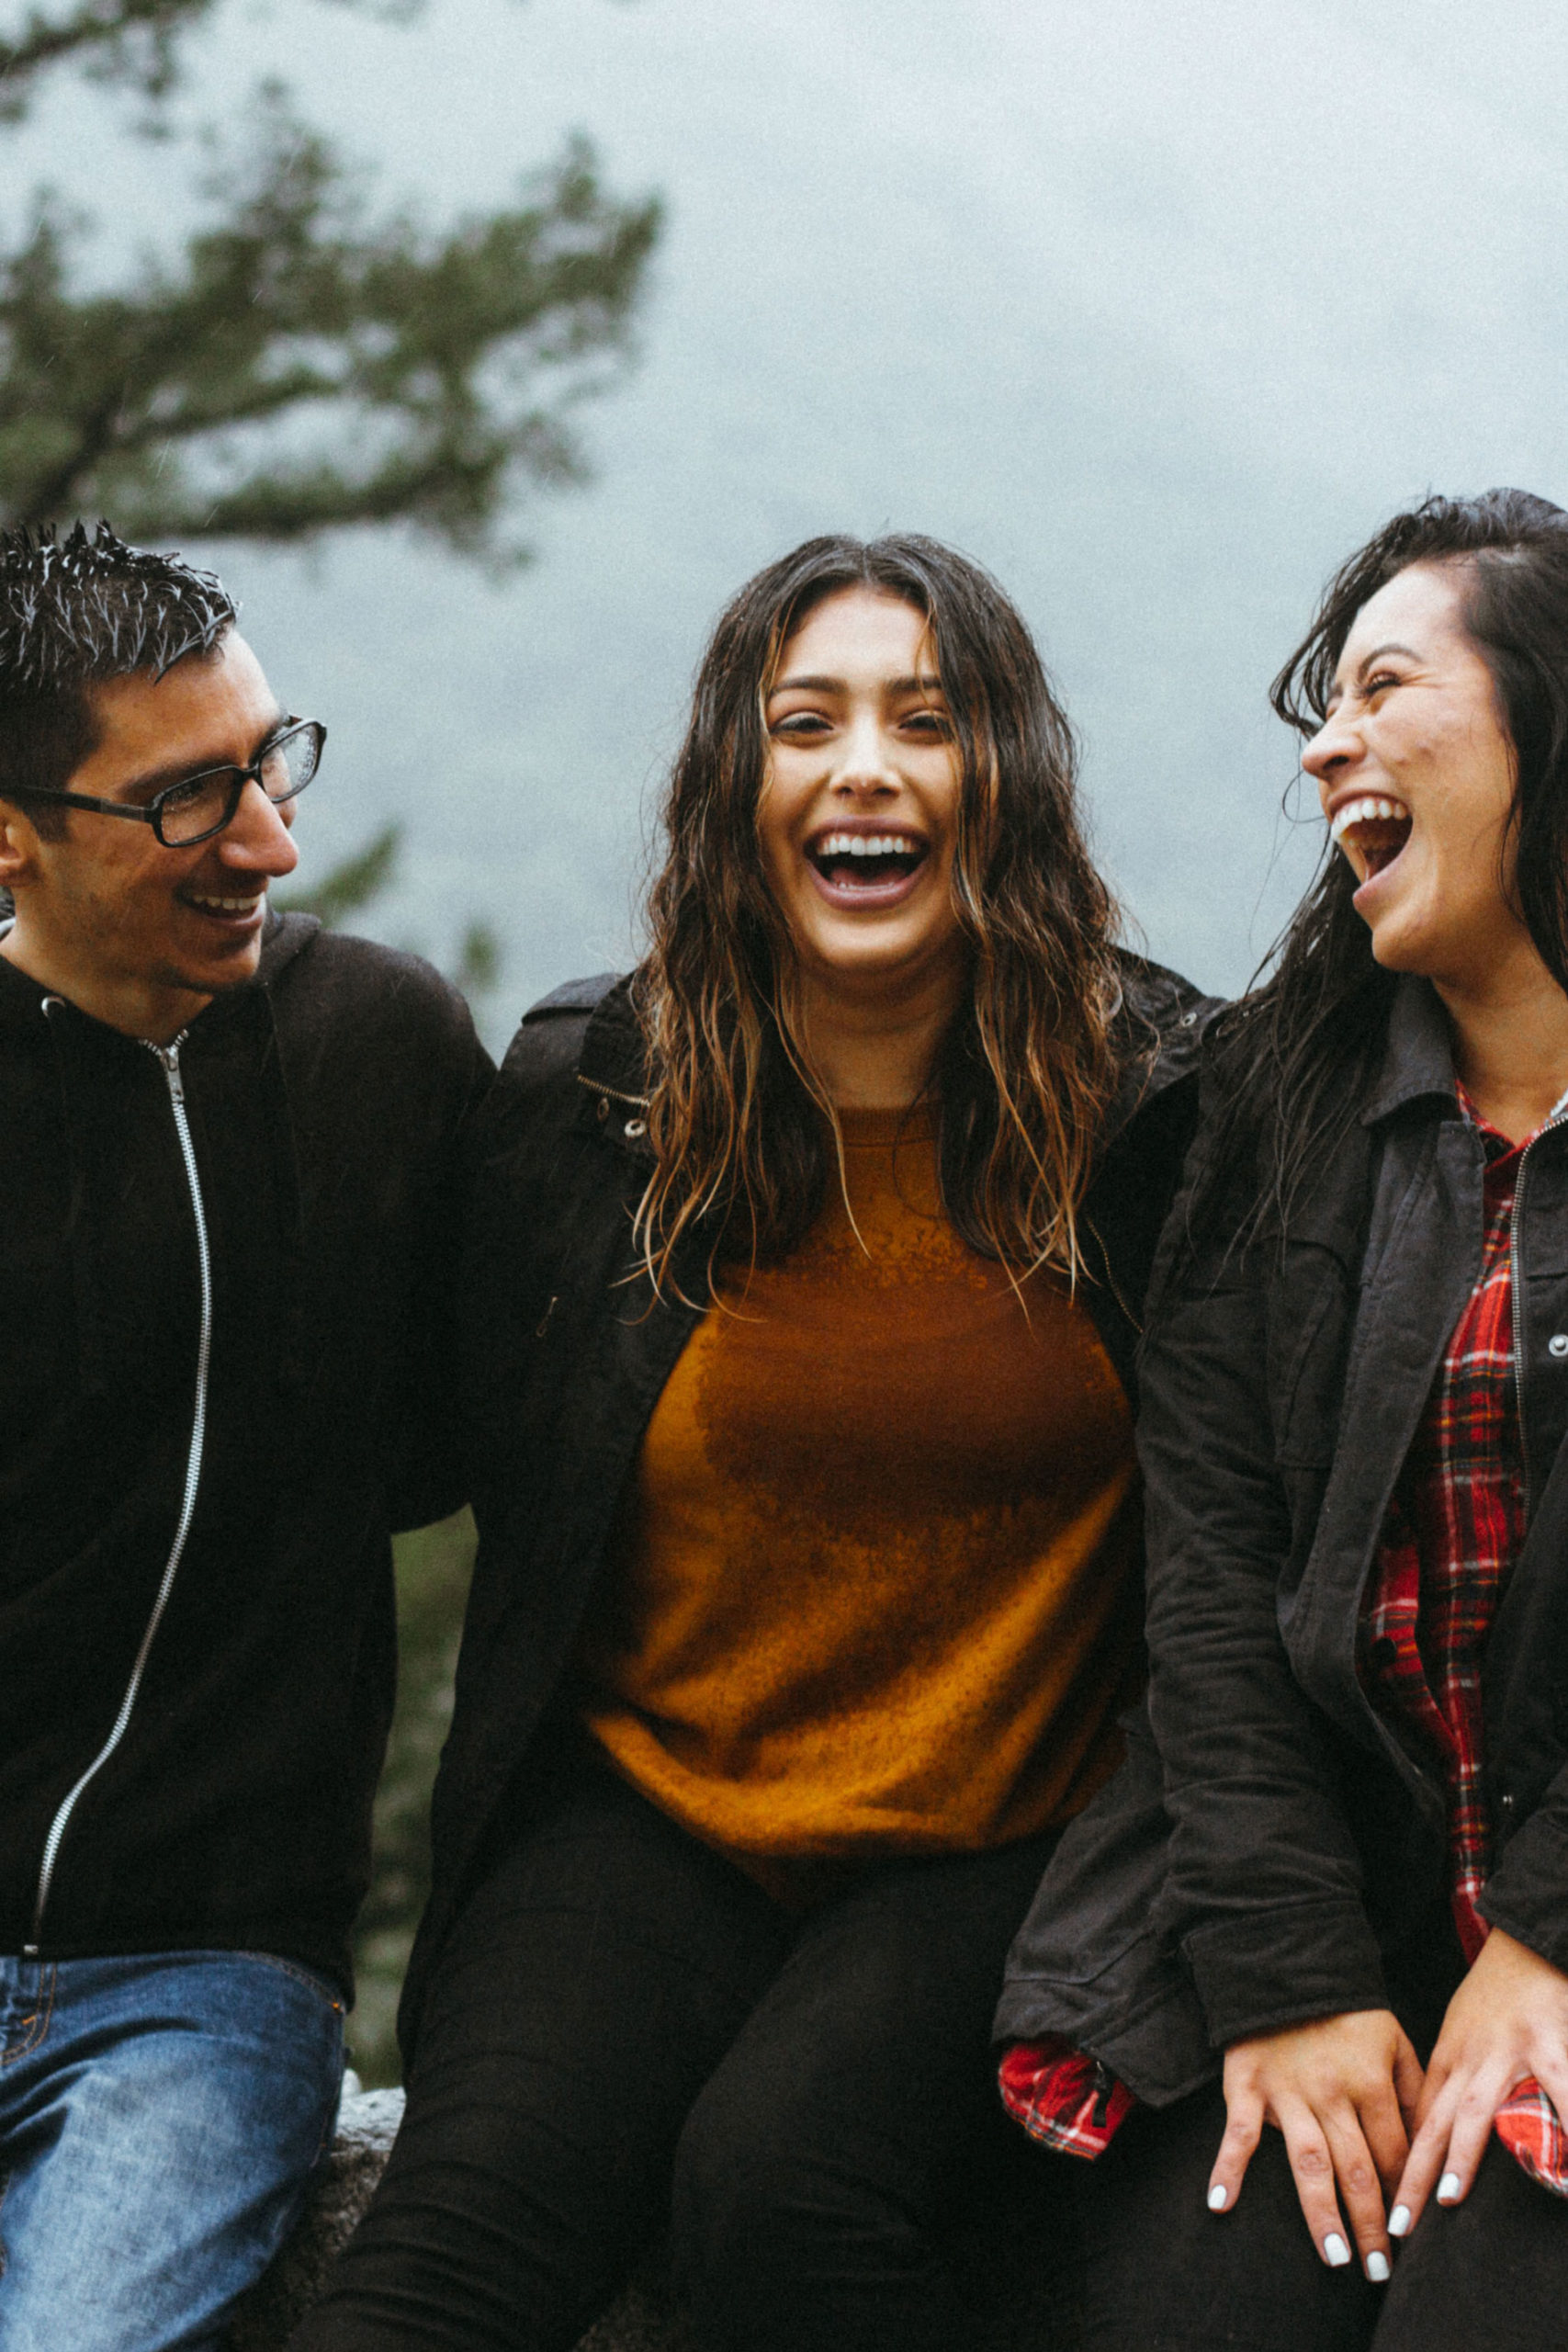 Closeup of three laughing people